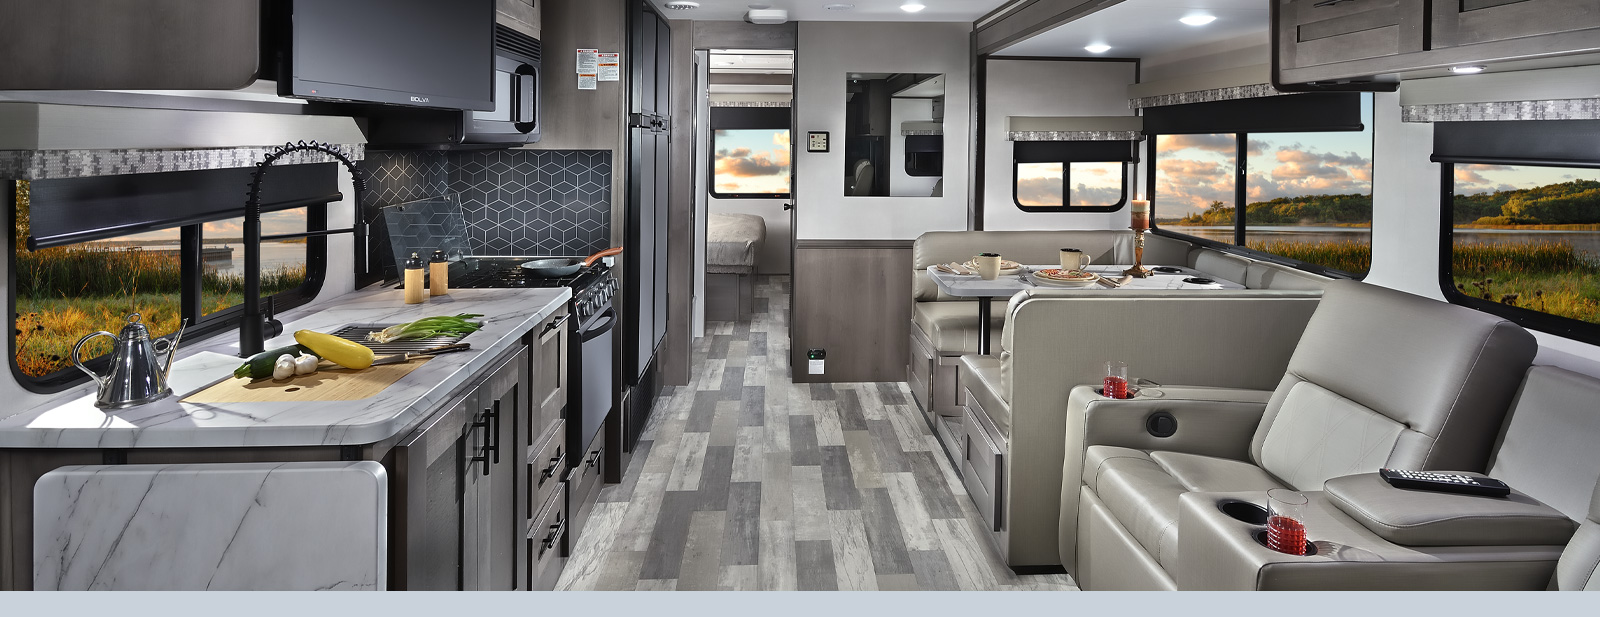 FR3 | Forest River RV - Manufacturer of Travel Trailers